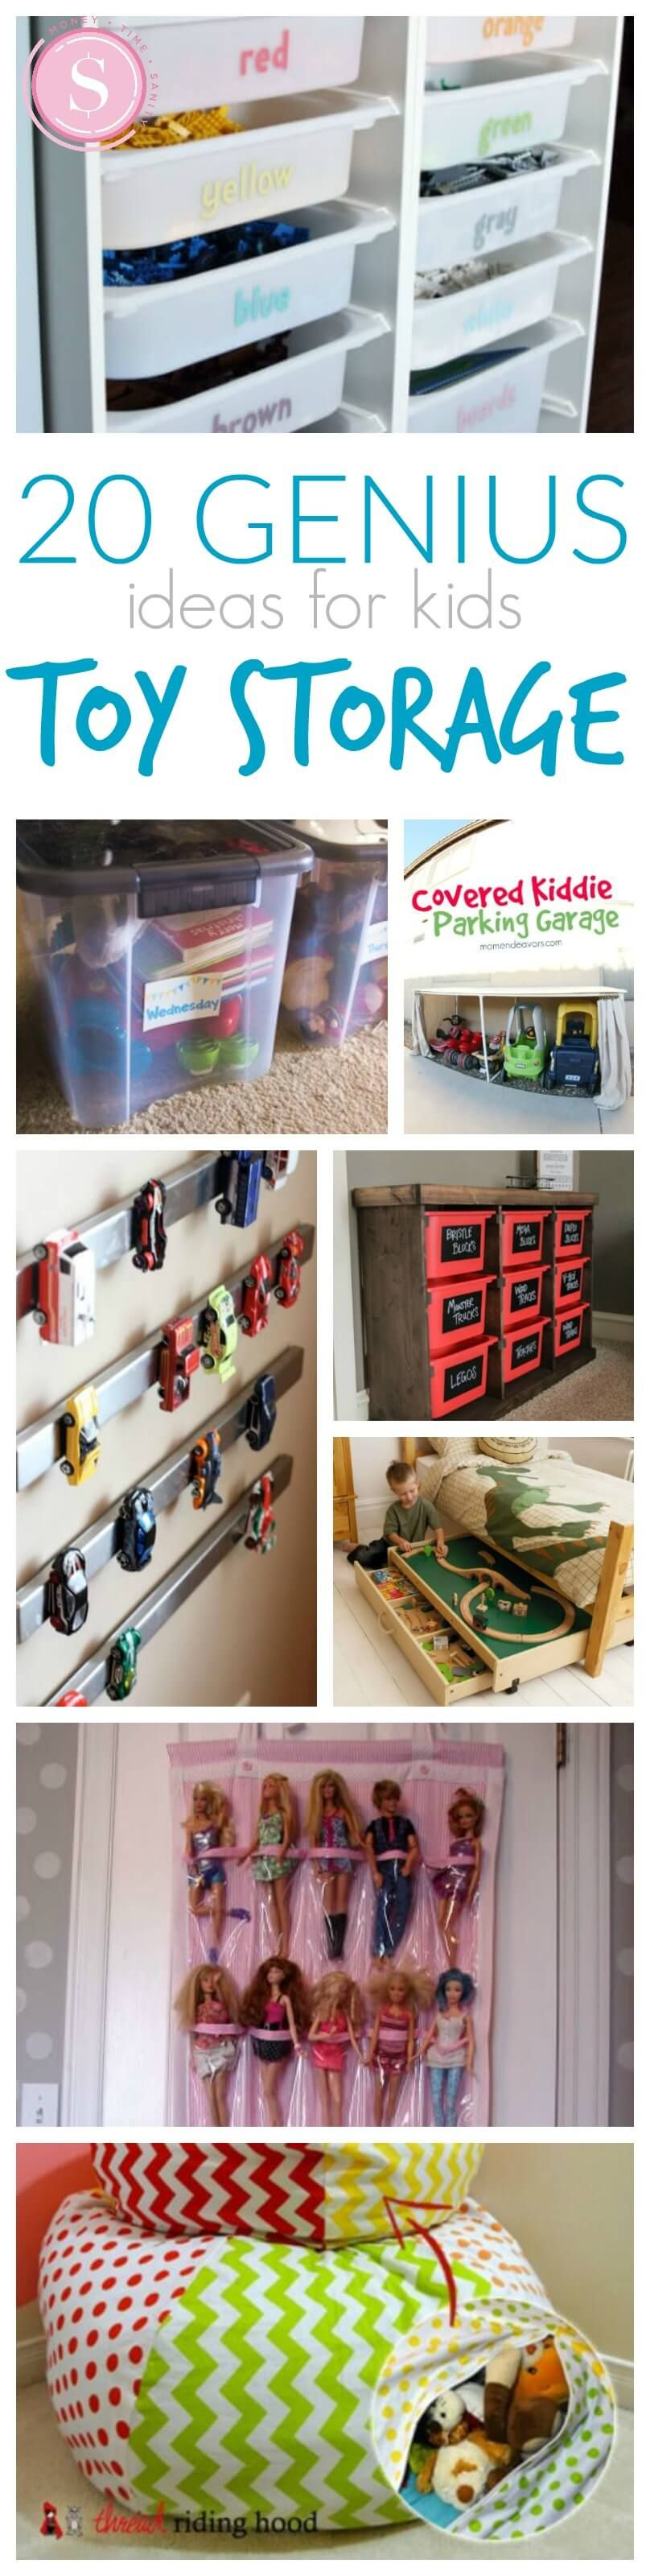 Kids Bedroom Organizing Ideas 20 genius ideas for organizing your kid's rooms! great tips and